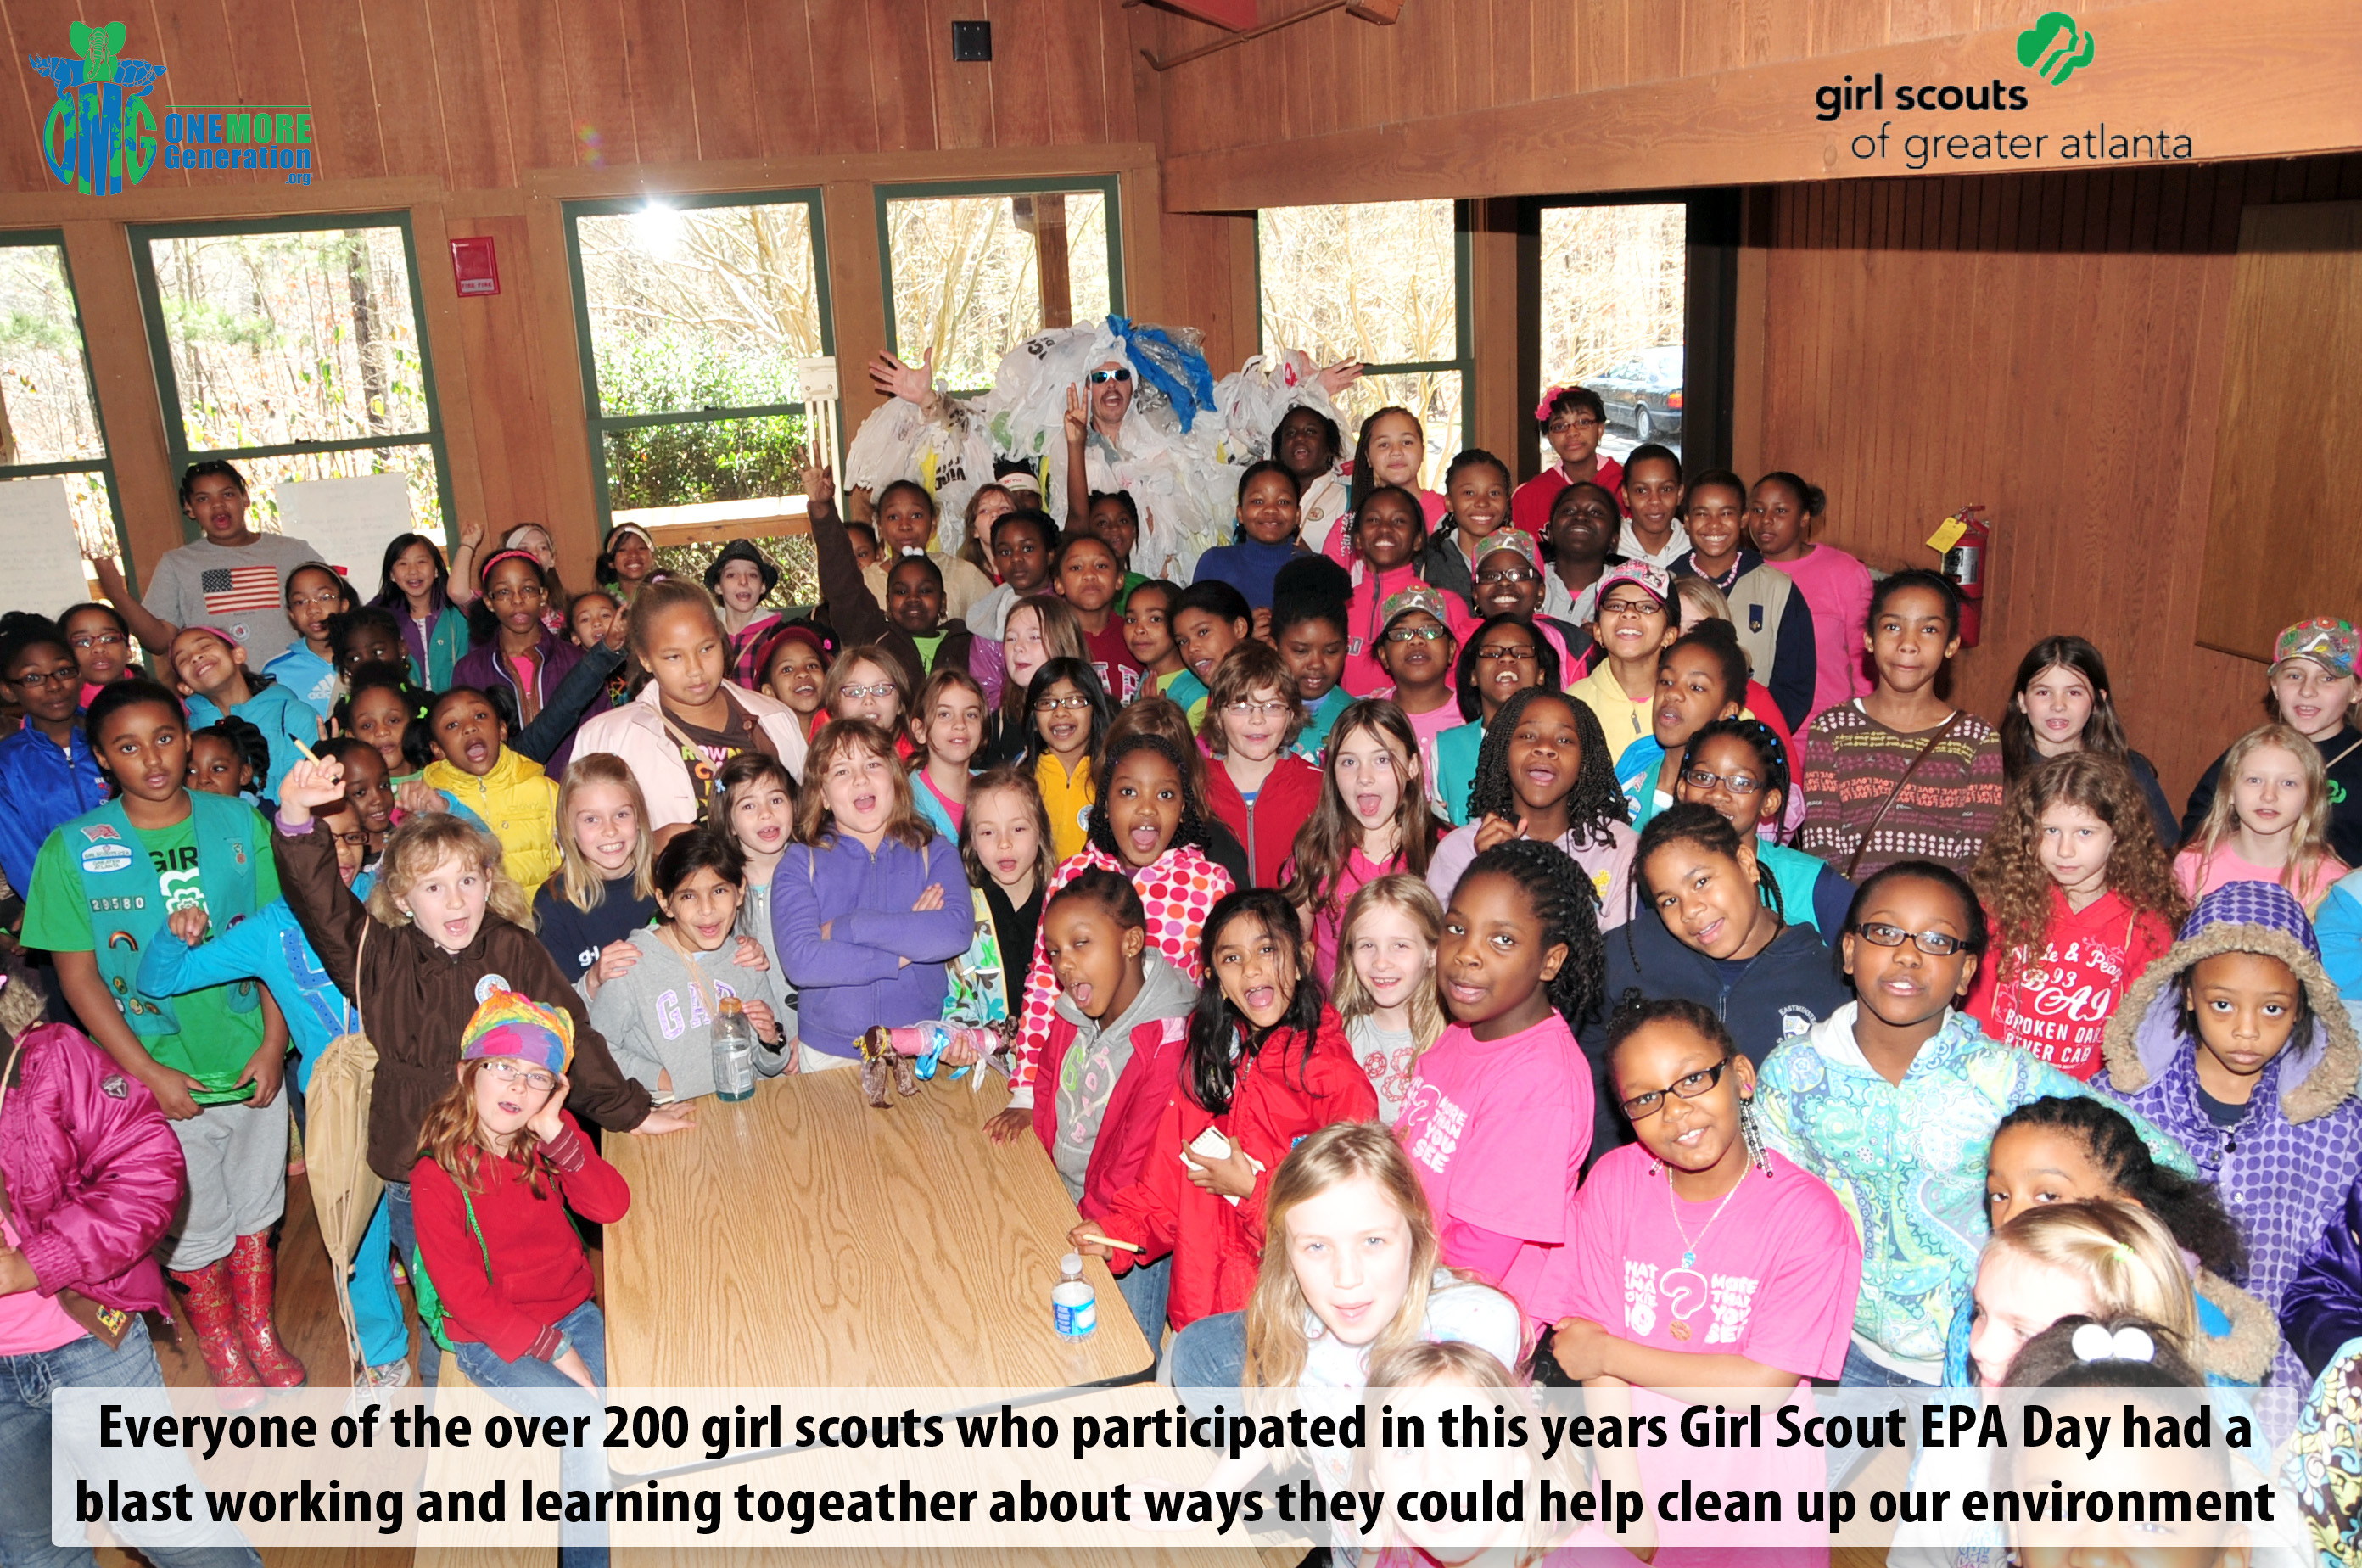 OMG Joins Girl Scouts of Greater Atlanta for their EPA Event